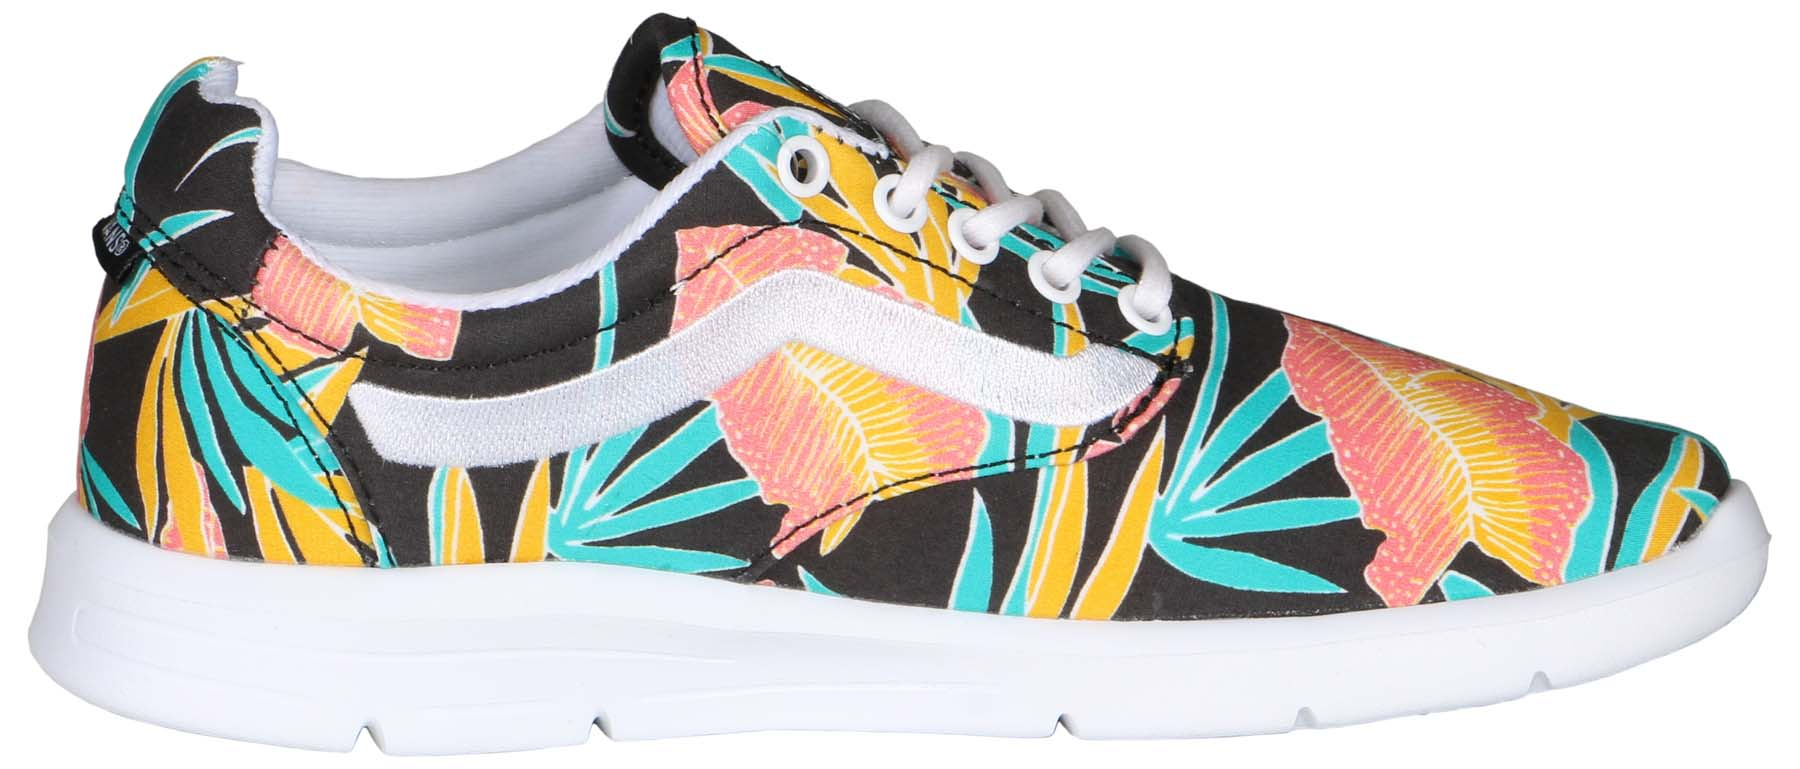 Vans Iso 1.5 Tropical Leaves True White / Ankle-High Canvas Skateboarding Shoe - 9.5M 8M